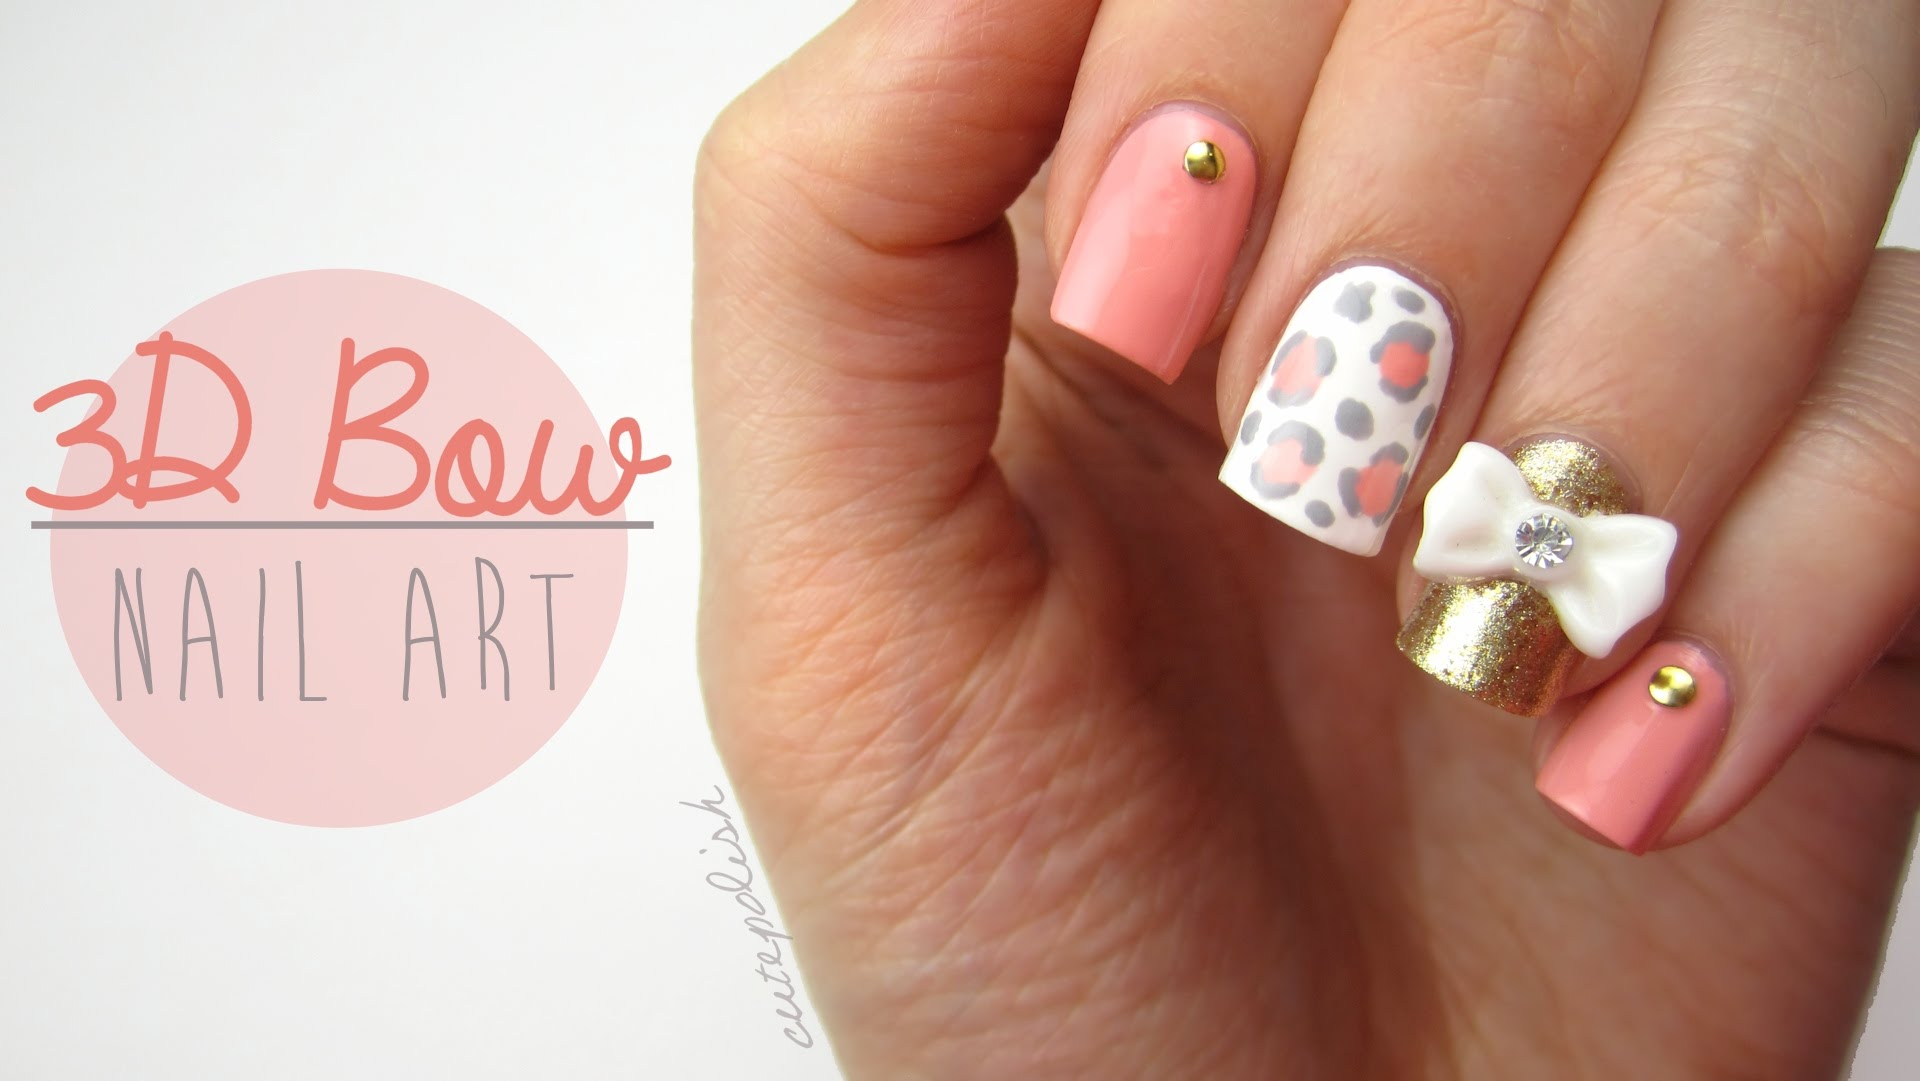 Cute Nail Designs with 3D Bows